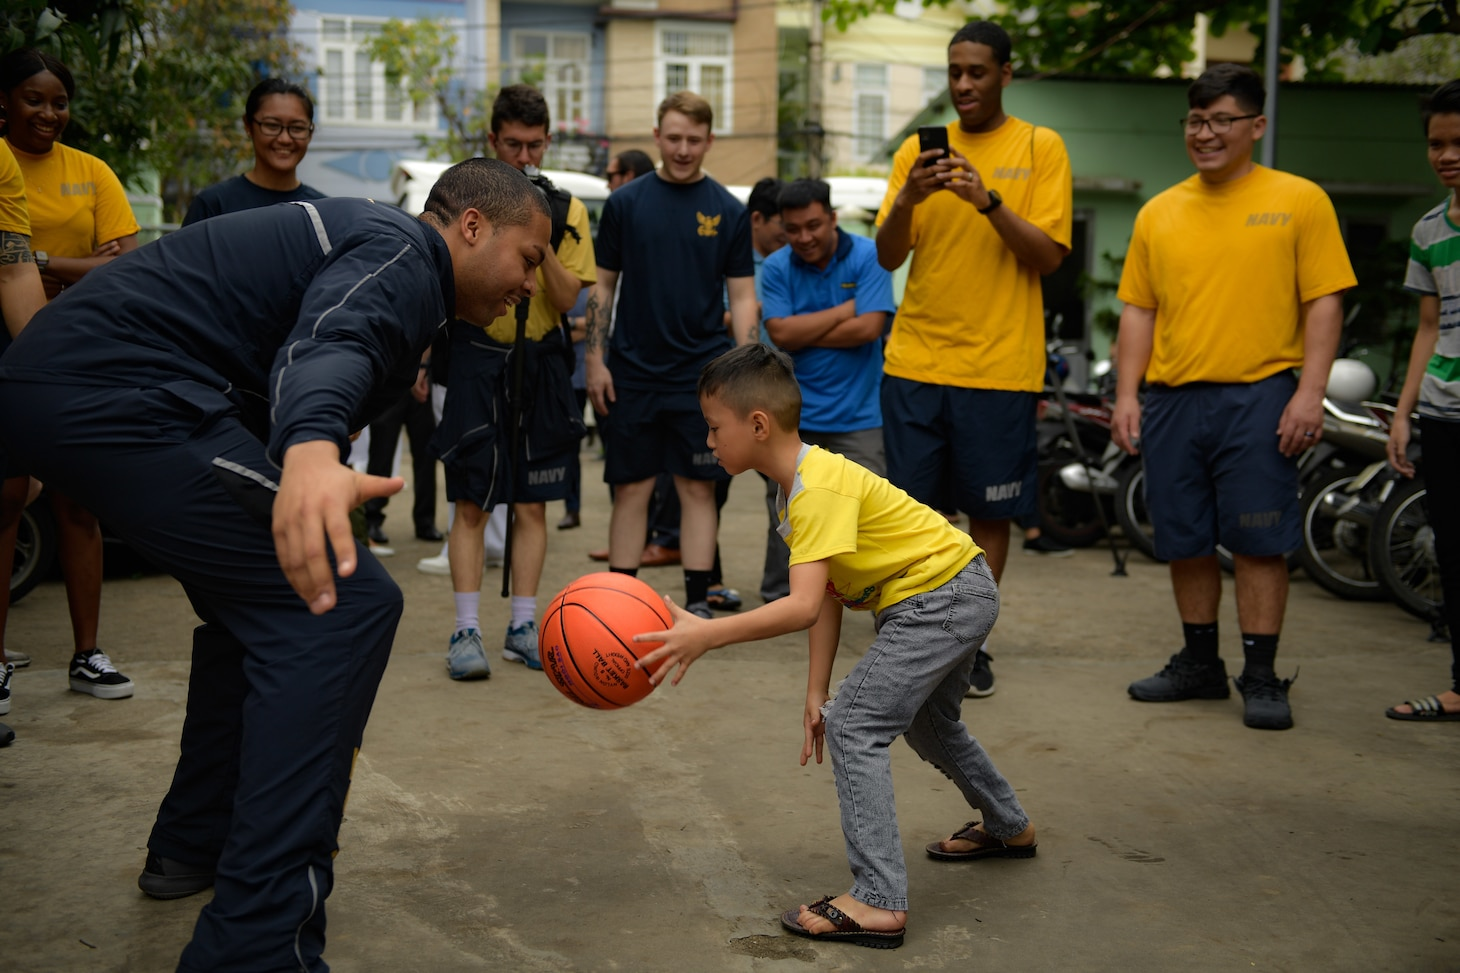 200306-N-YQ383-1567 VIETNAM (March 6, 2020) U.S. Navy Aviation Ordnanceman 3rd Class Khaden D. Vaughn, from Columbus, Ohio, plays basketball with a child at the Dorothea's Project Legacies Charity Center, Da Nang, Vietnam, during a community relations project organized by the aircraft carrier USS Theodore Roosevelt (CVN 71) March 6, 2020. Theodore Roosevelt and the Ticonderoga-class guided-missile cruiser USS Bunker Hill (CG 52) are in Vietnam for a port visit during their scheduled deployment to the Indo-Pacific.